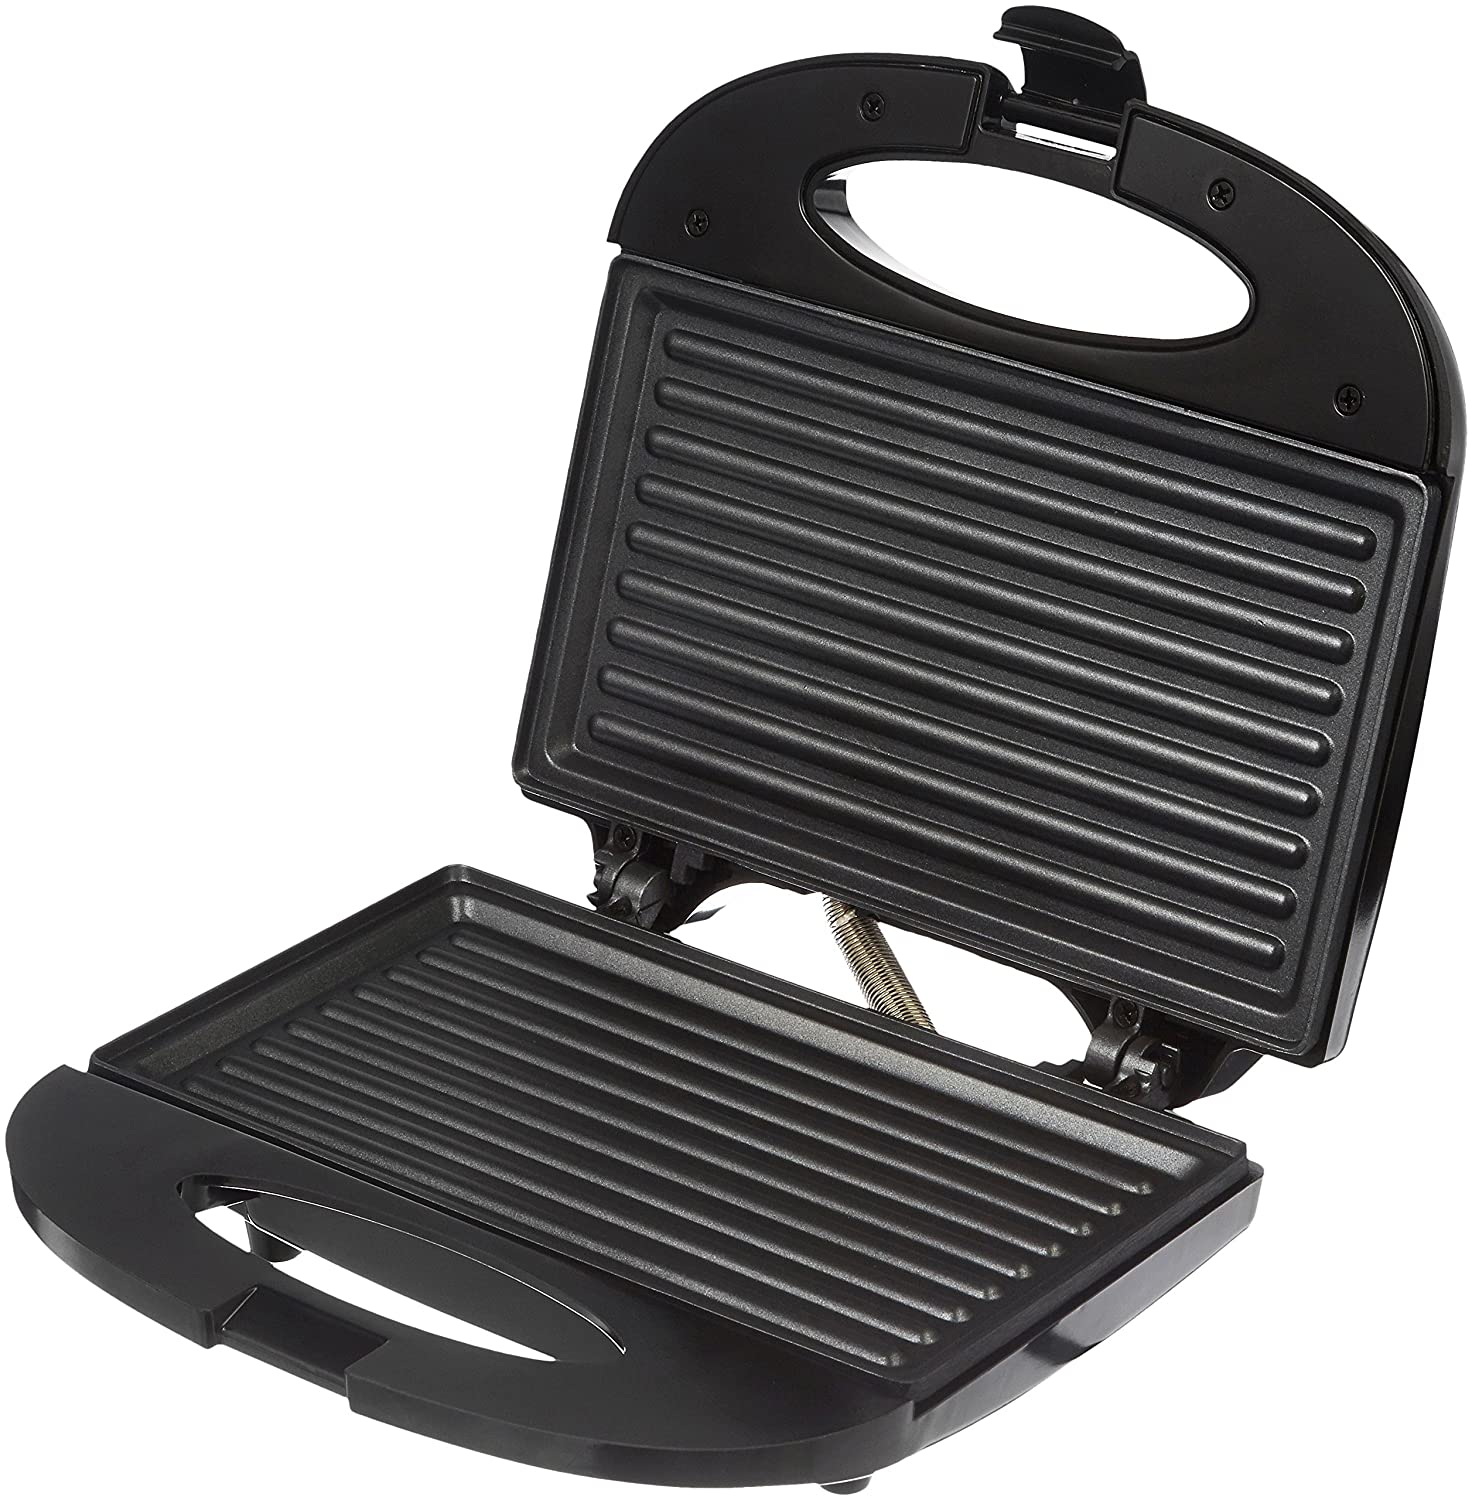 Buy Amazon Brand Solimo Non Stick Grill Sandwich Maker 750 Watt Black Online At Low Prices In India Amazon In